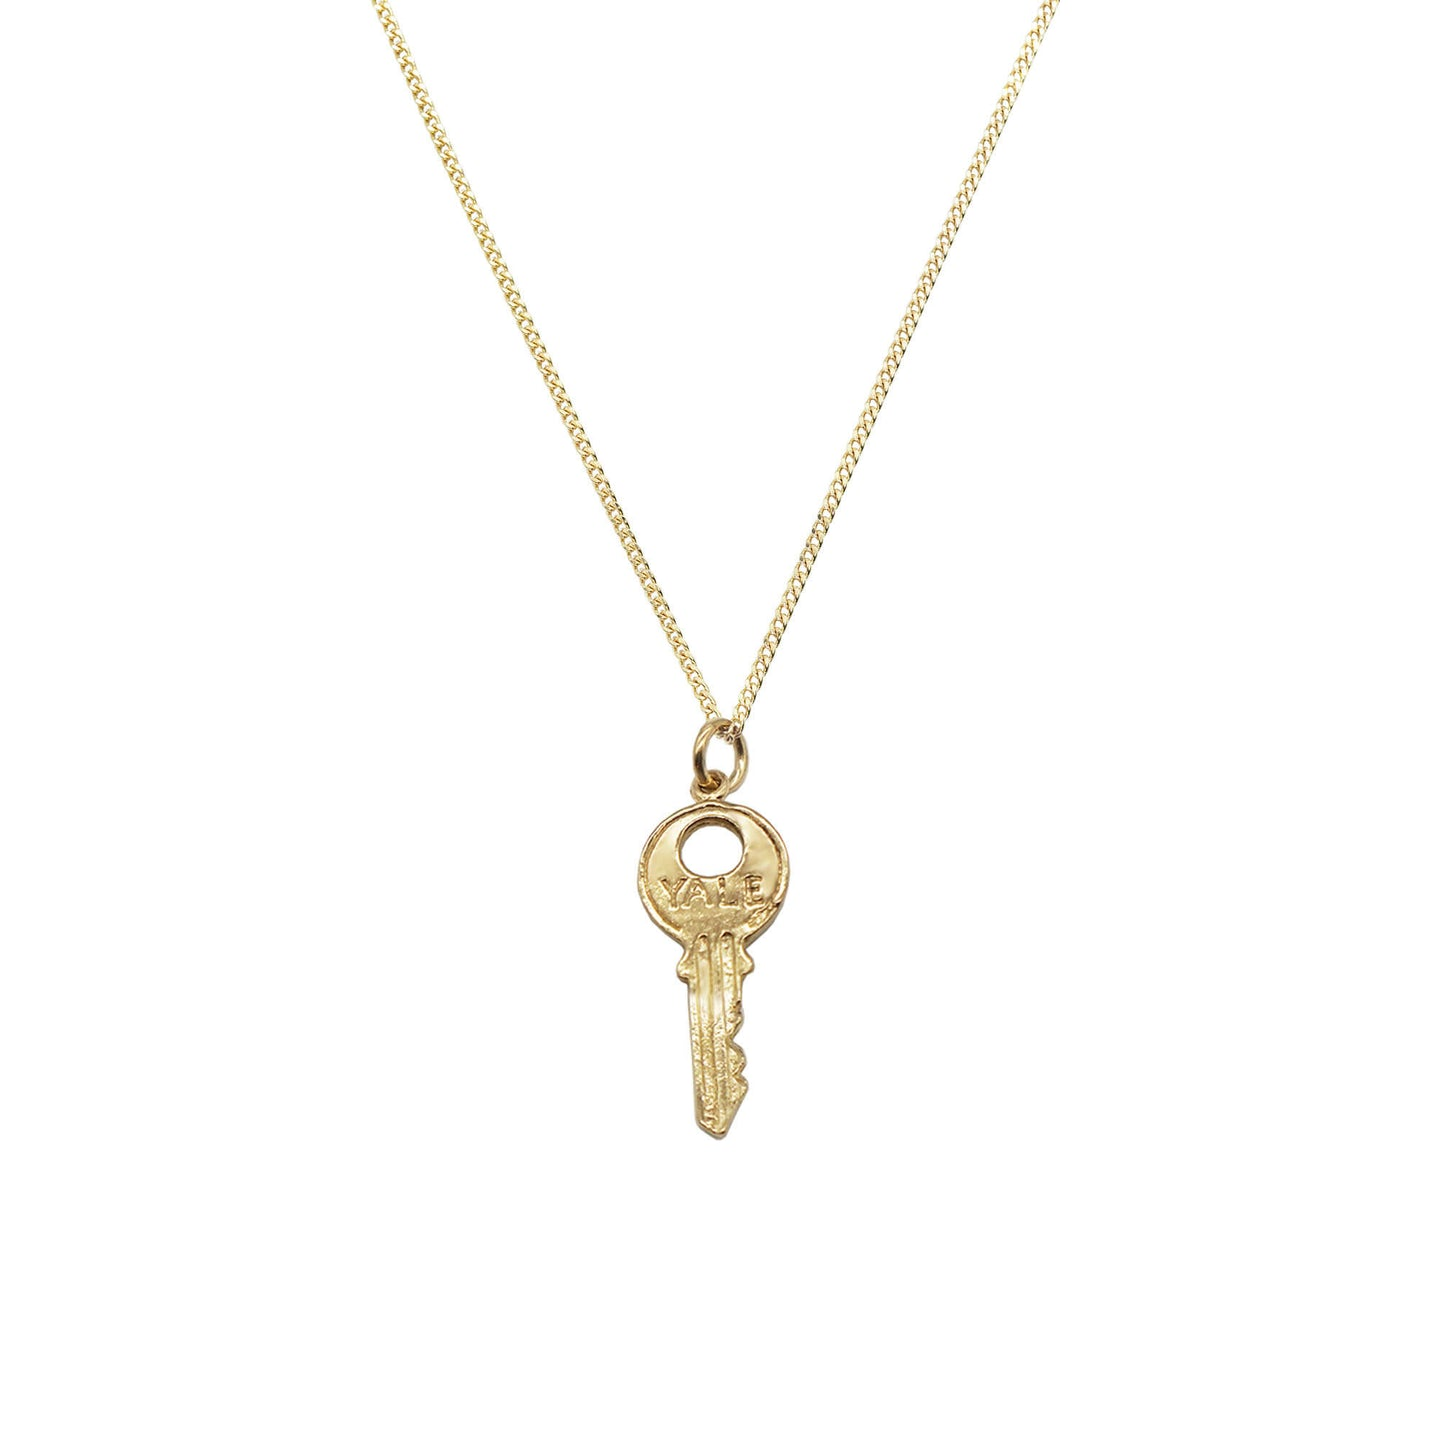 Vintage 9K Gold Key Charm Neckace on a fine curb chain. Key has the word 'YALE' engraved on front. White background.